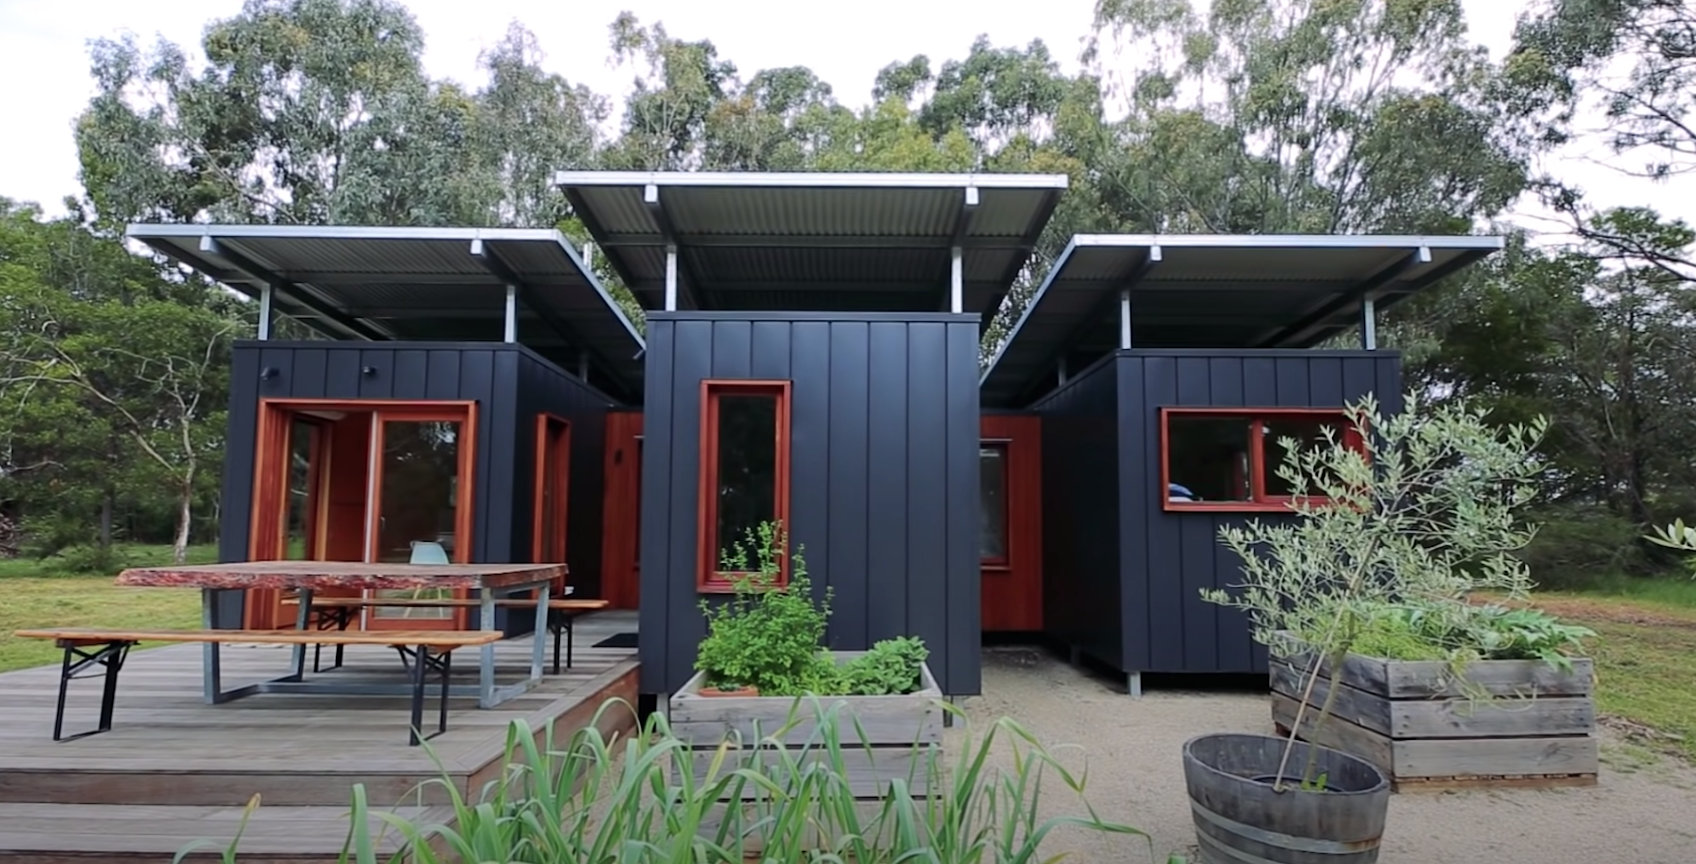 A very modern and sleek home made from three connected shipping containers